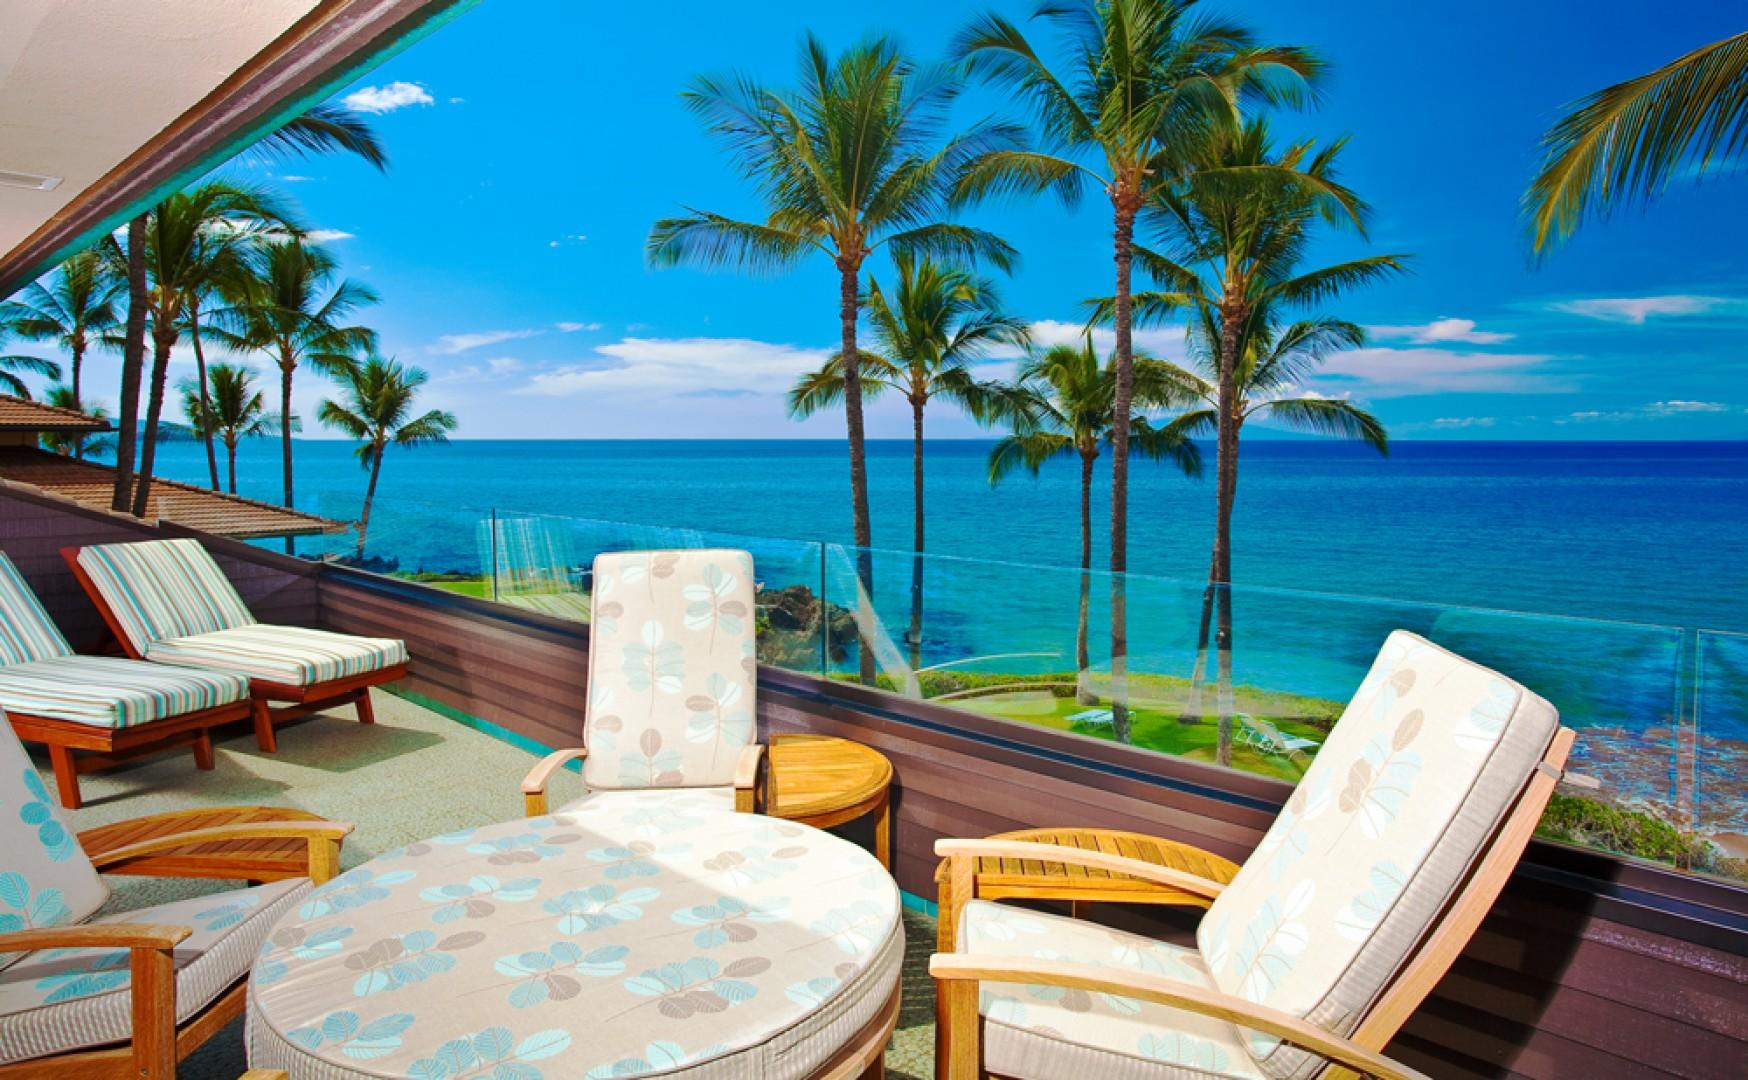 Outdoor Dining, Chaise Lounges and Cocktail Hour Chat Table at Sunny Surf E301 at Makena Surf Resort Overlooking Sandy Poolenalena Beach